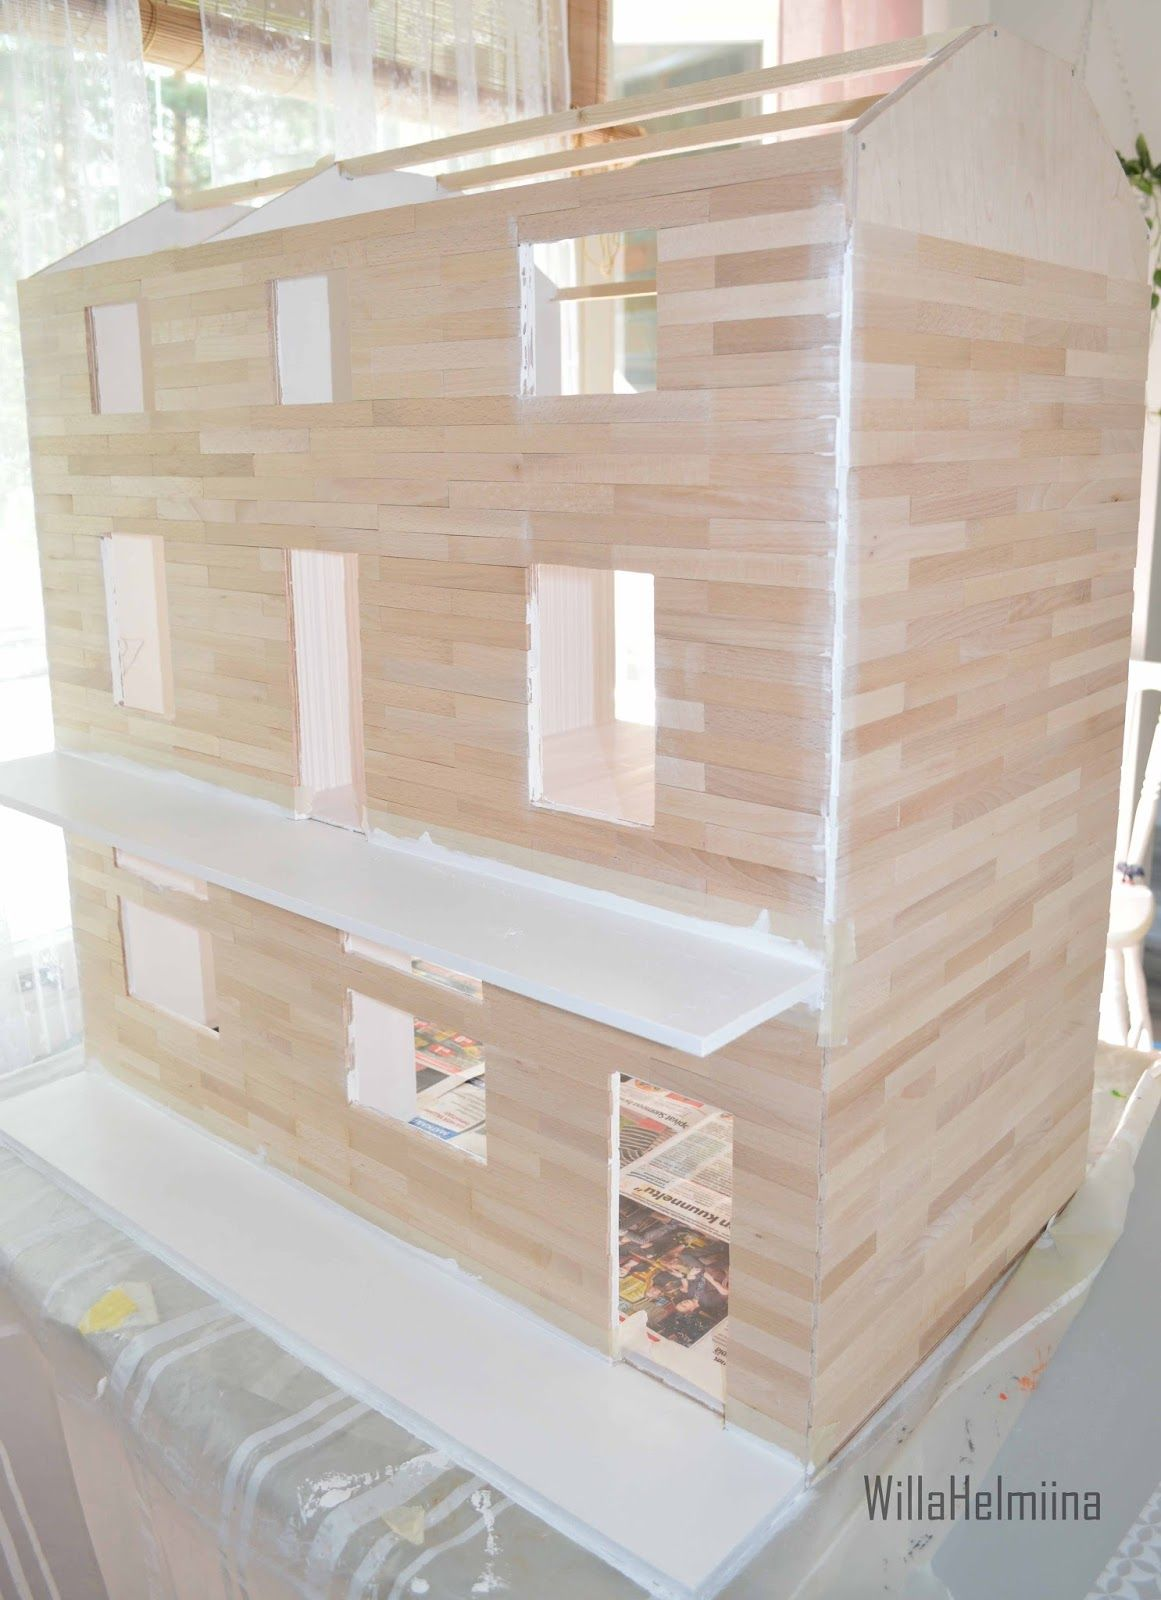 How to make dollhouse outside planking. Dollhouse is finally getting shape and looking good, but still there is lots to do and thats great!